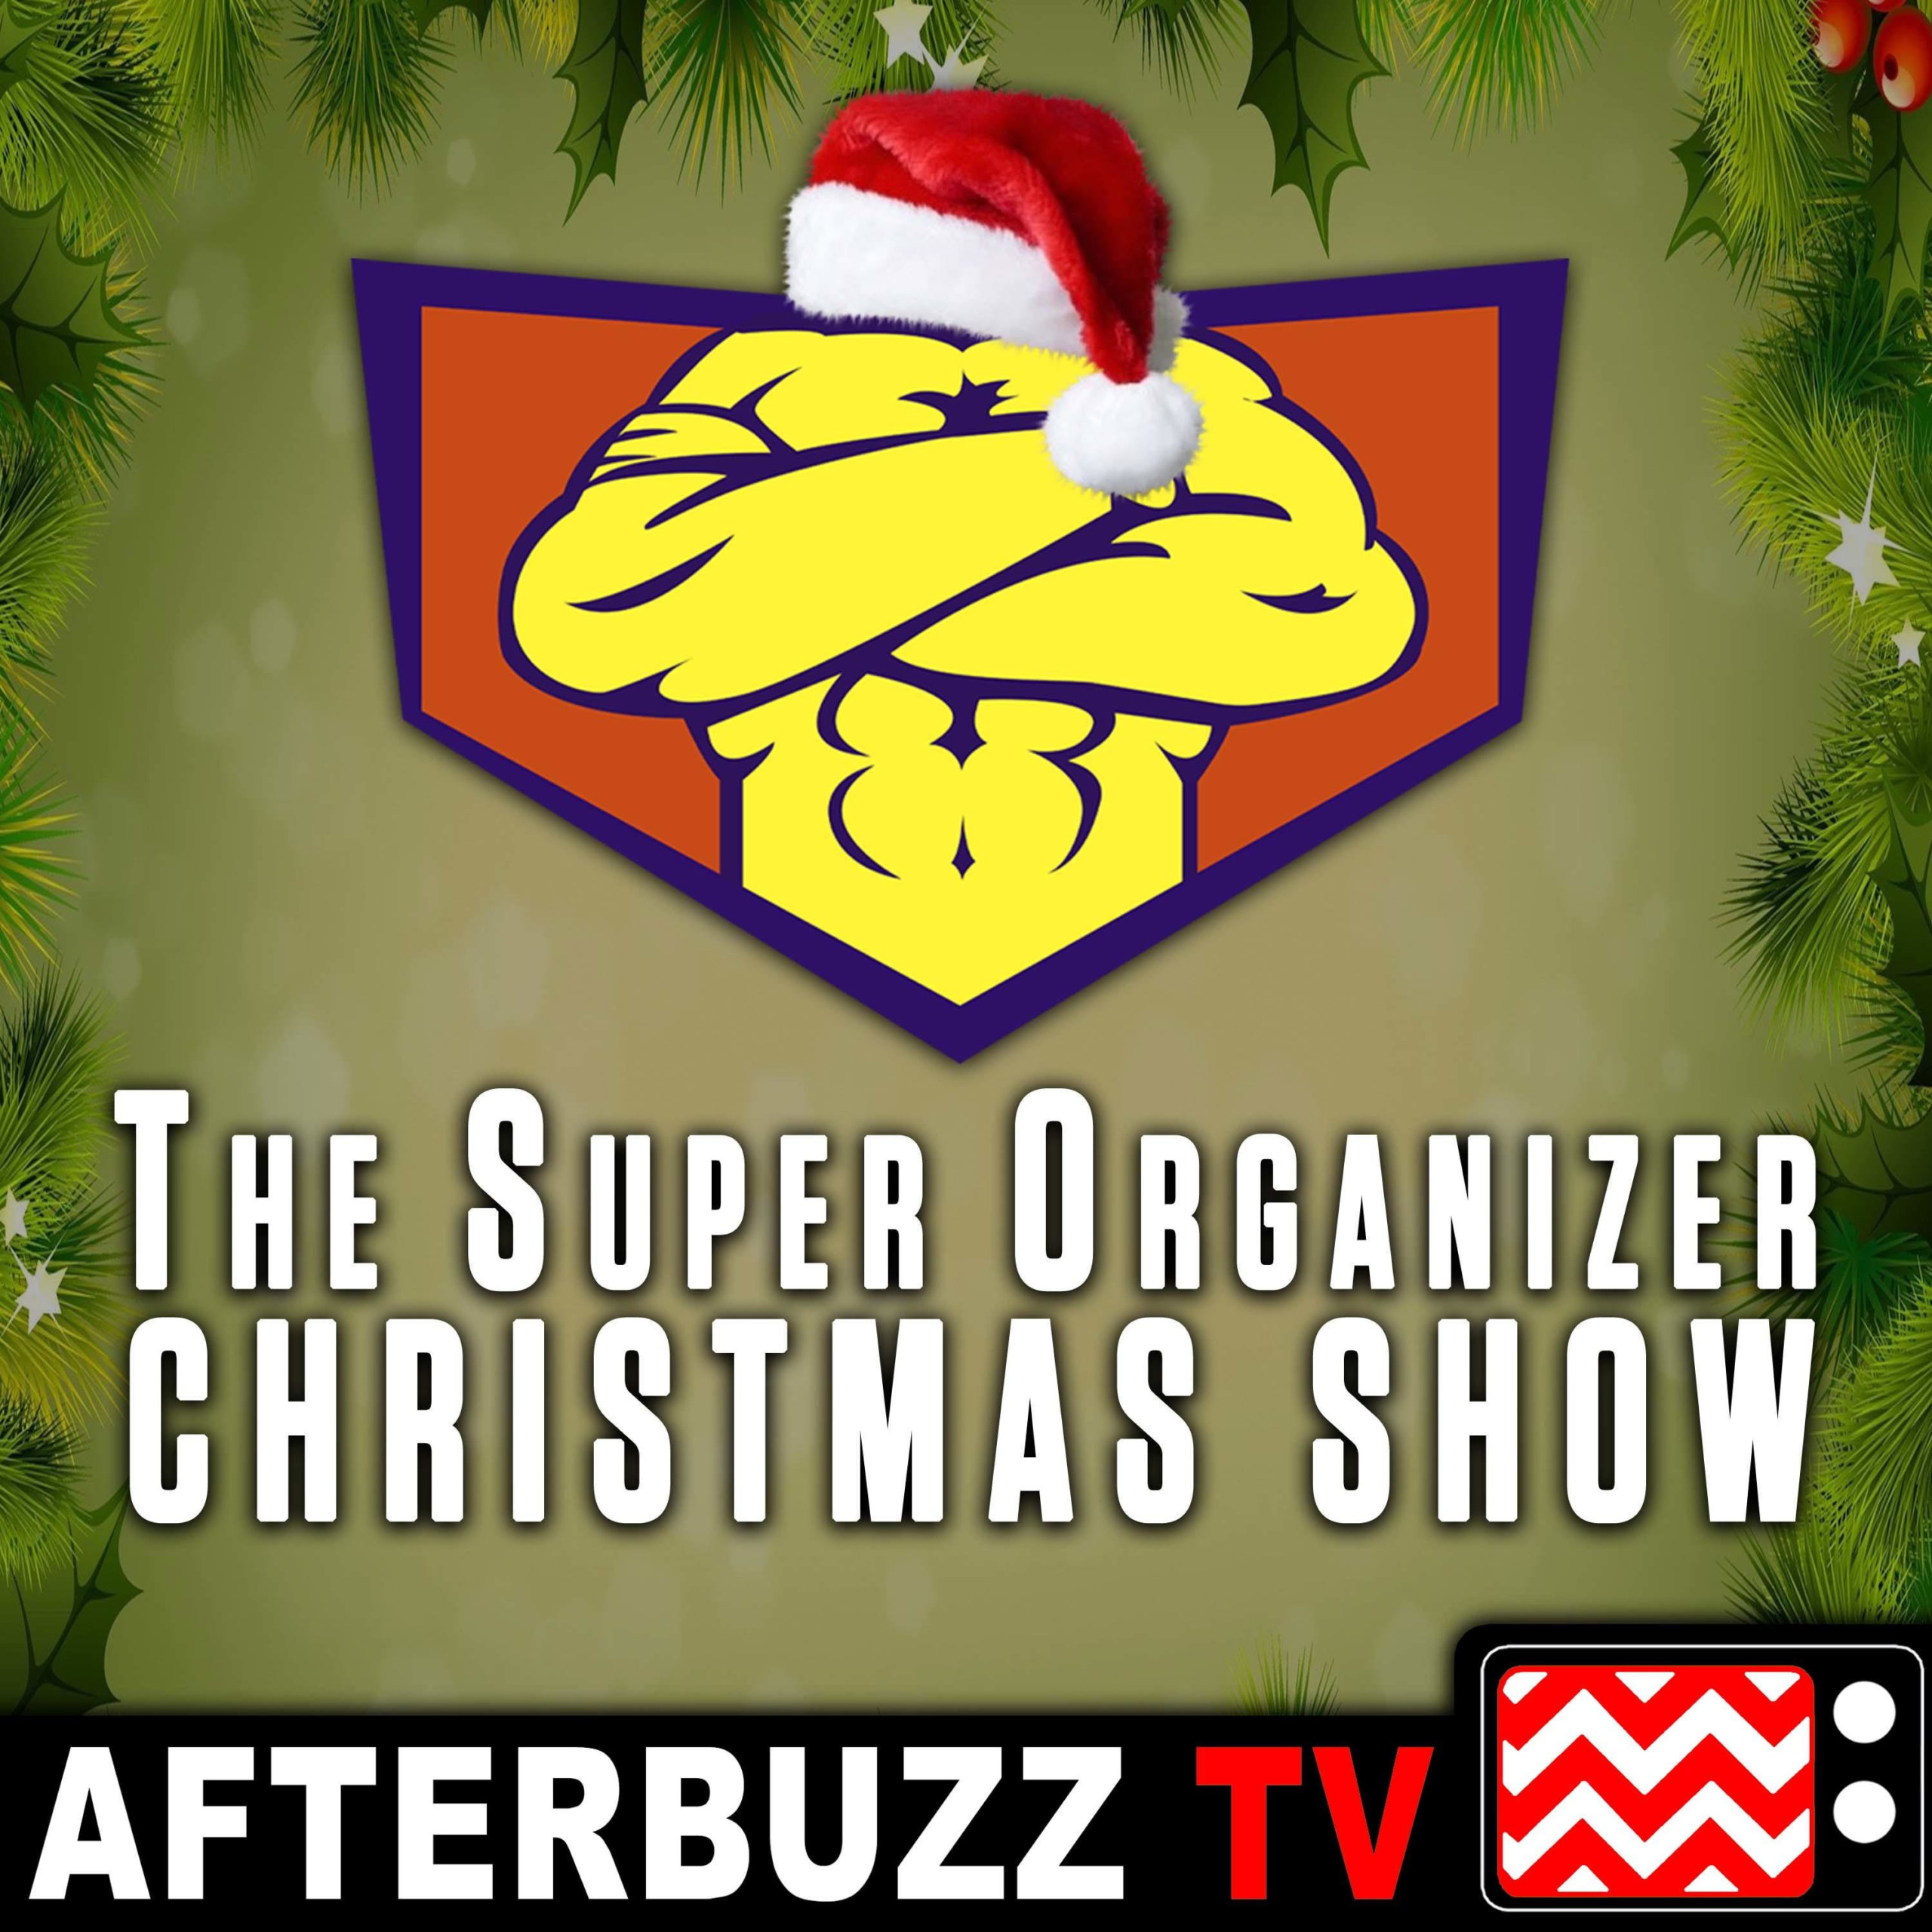 The Super Organizer Christmas Show